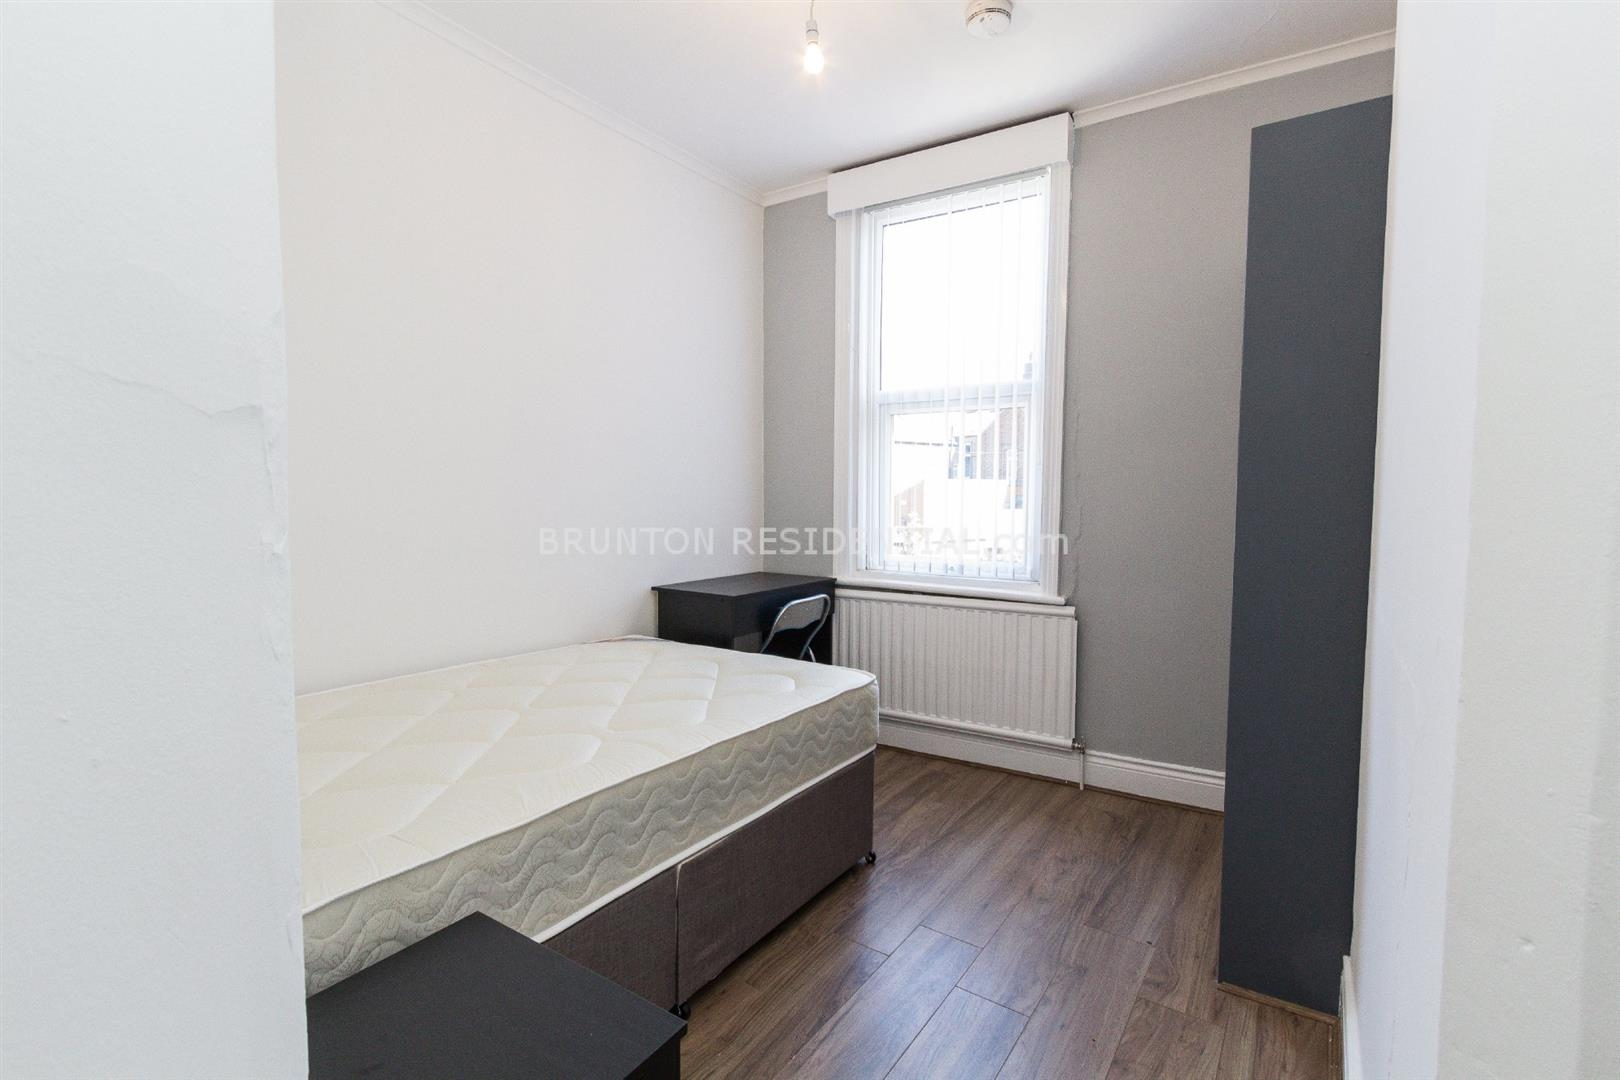 1 bed house share to rent in Newcastle Upon Tyne, NE6 5RA  - Property Image 1